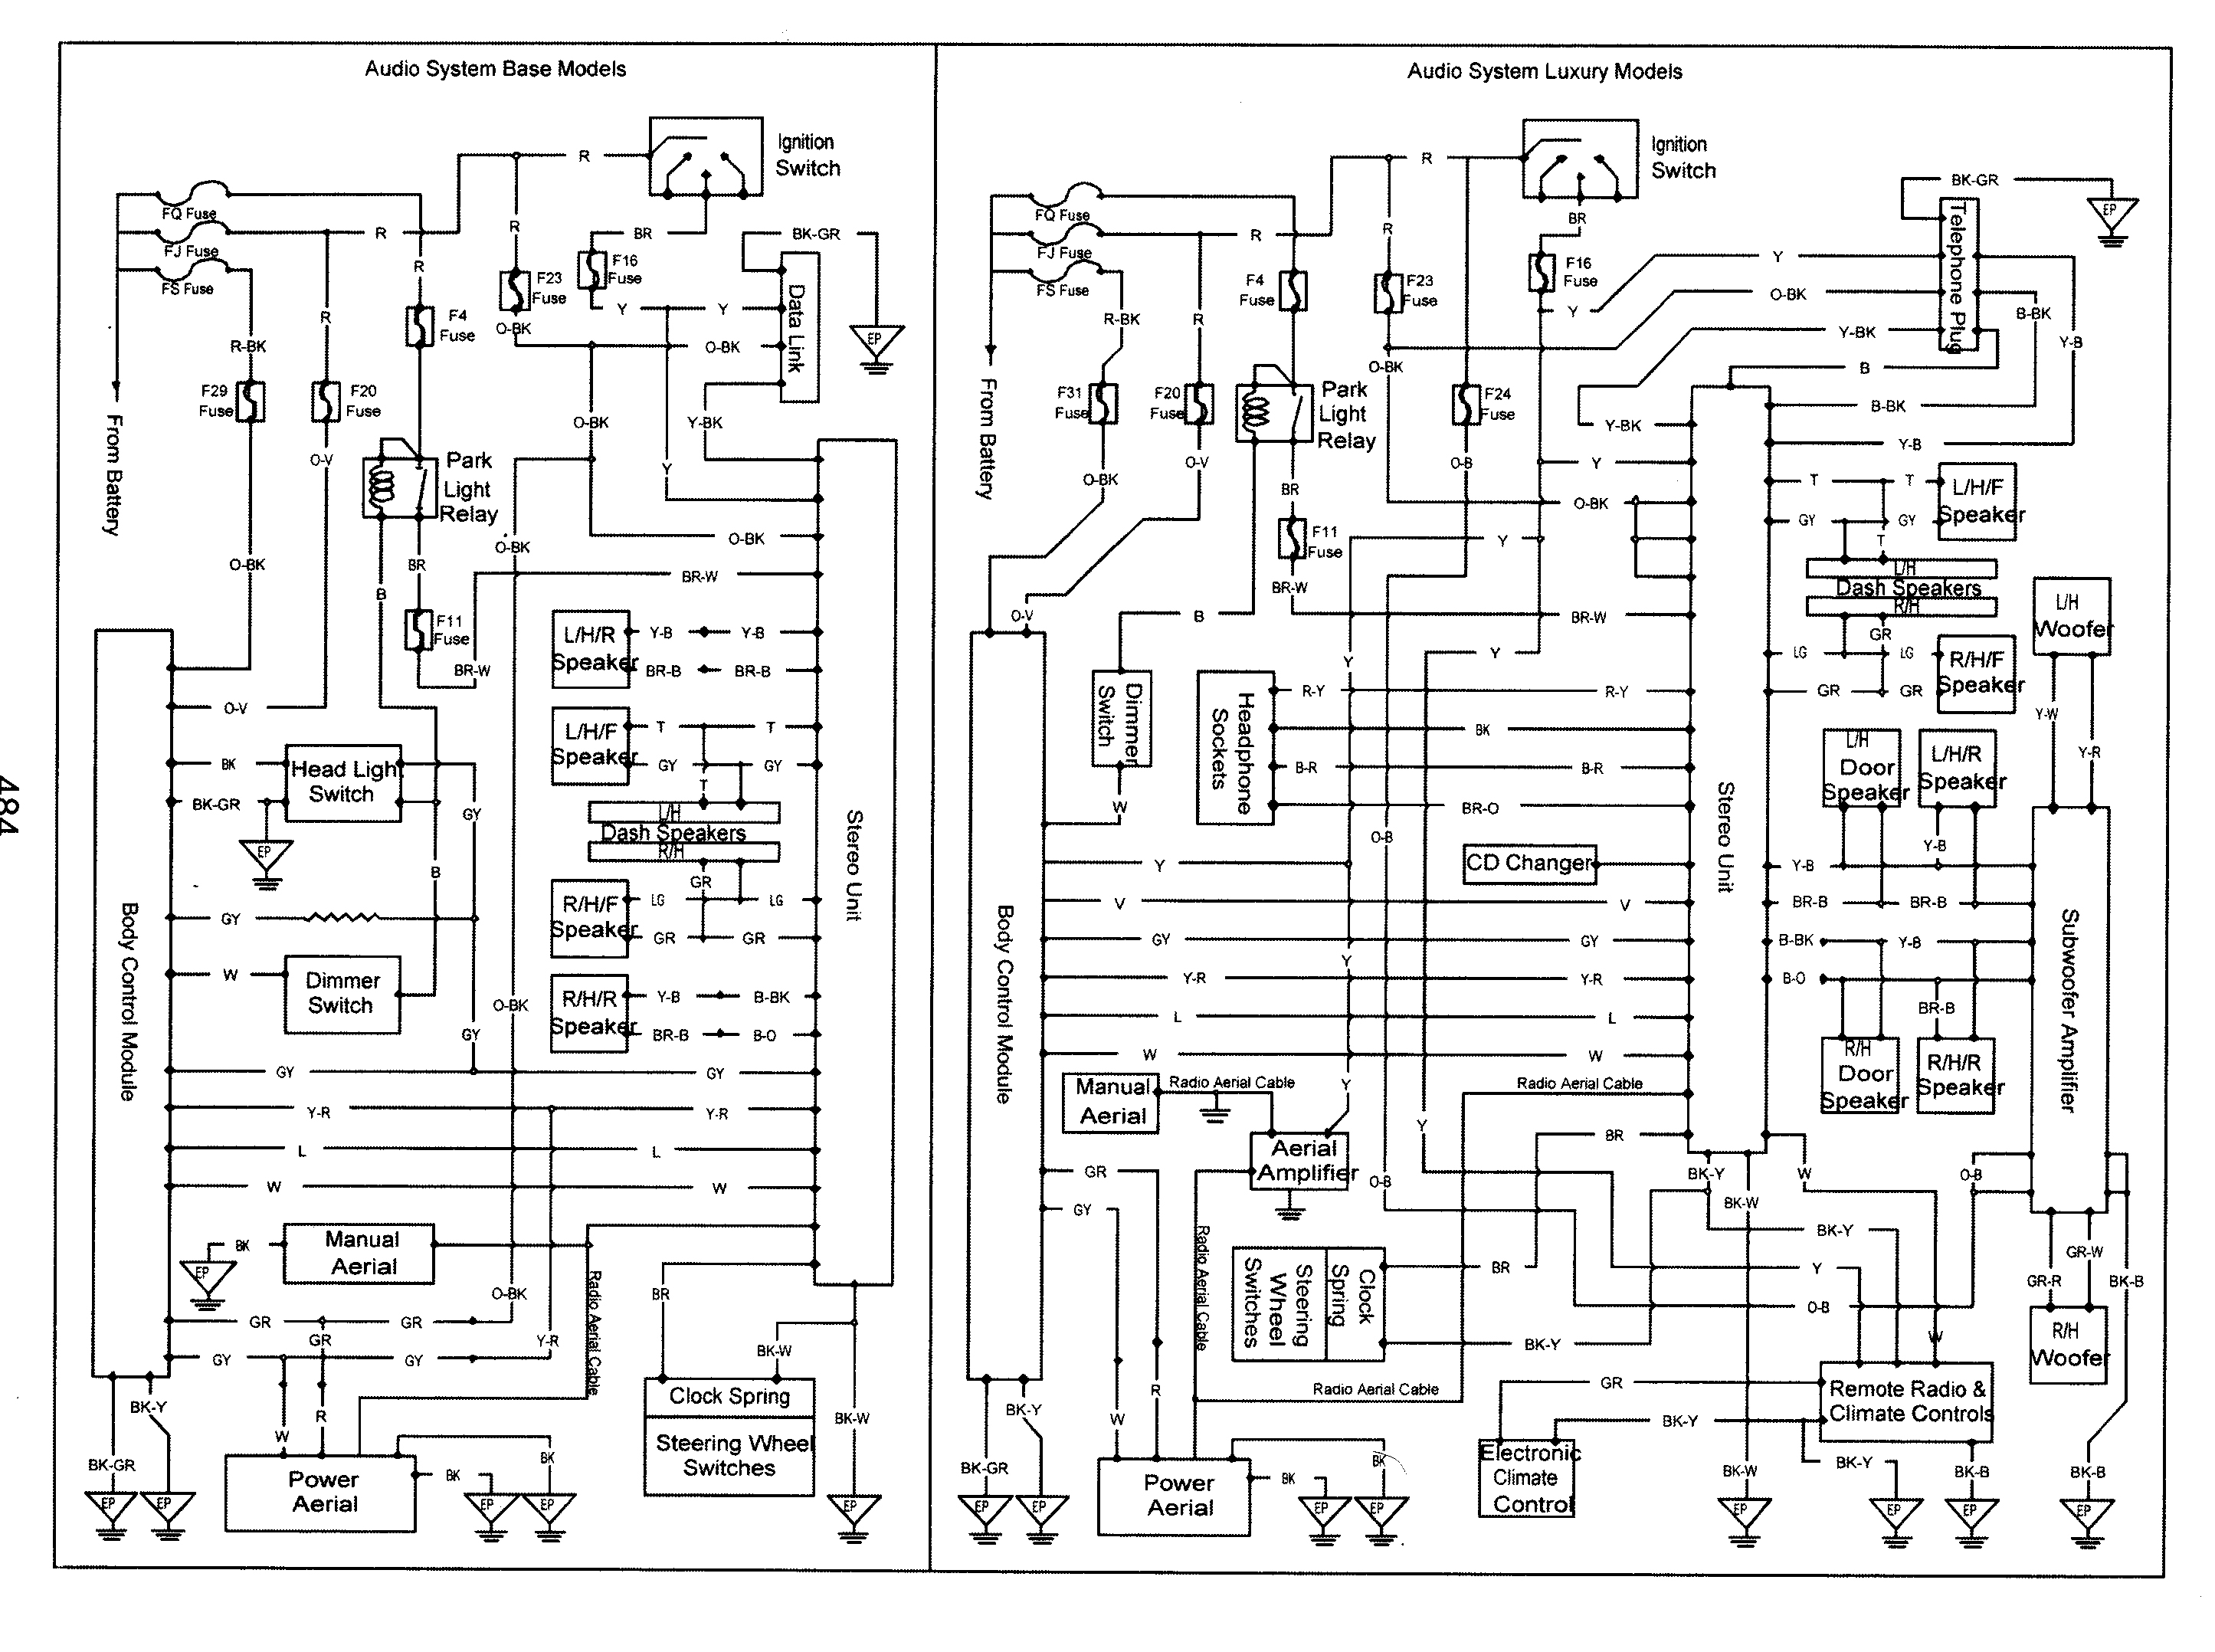 [DIAGRAM] Lx Torana Wiring Diagram FULL Version HD Quality